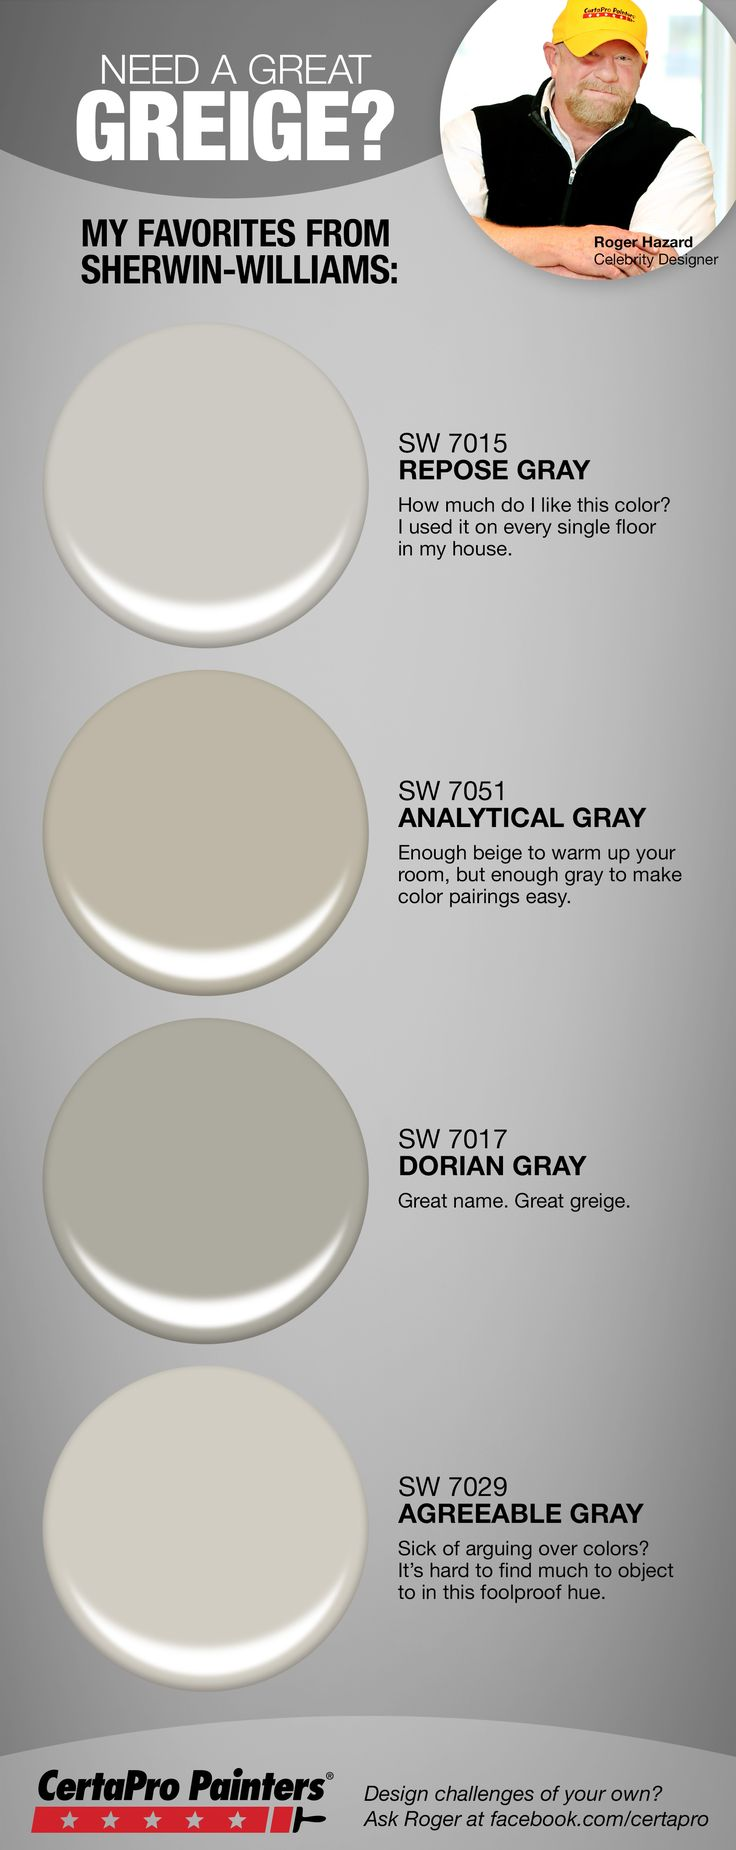 Looking For The Right Greige Paint Your Home Designer Roger Hazard Shares His Most Por Gray Beige Hybrid Colors